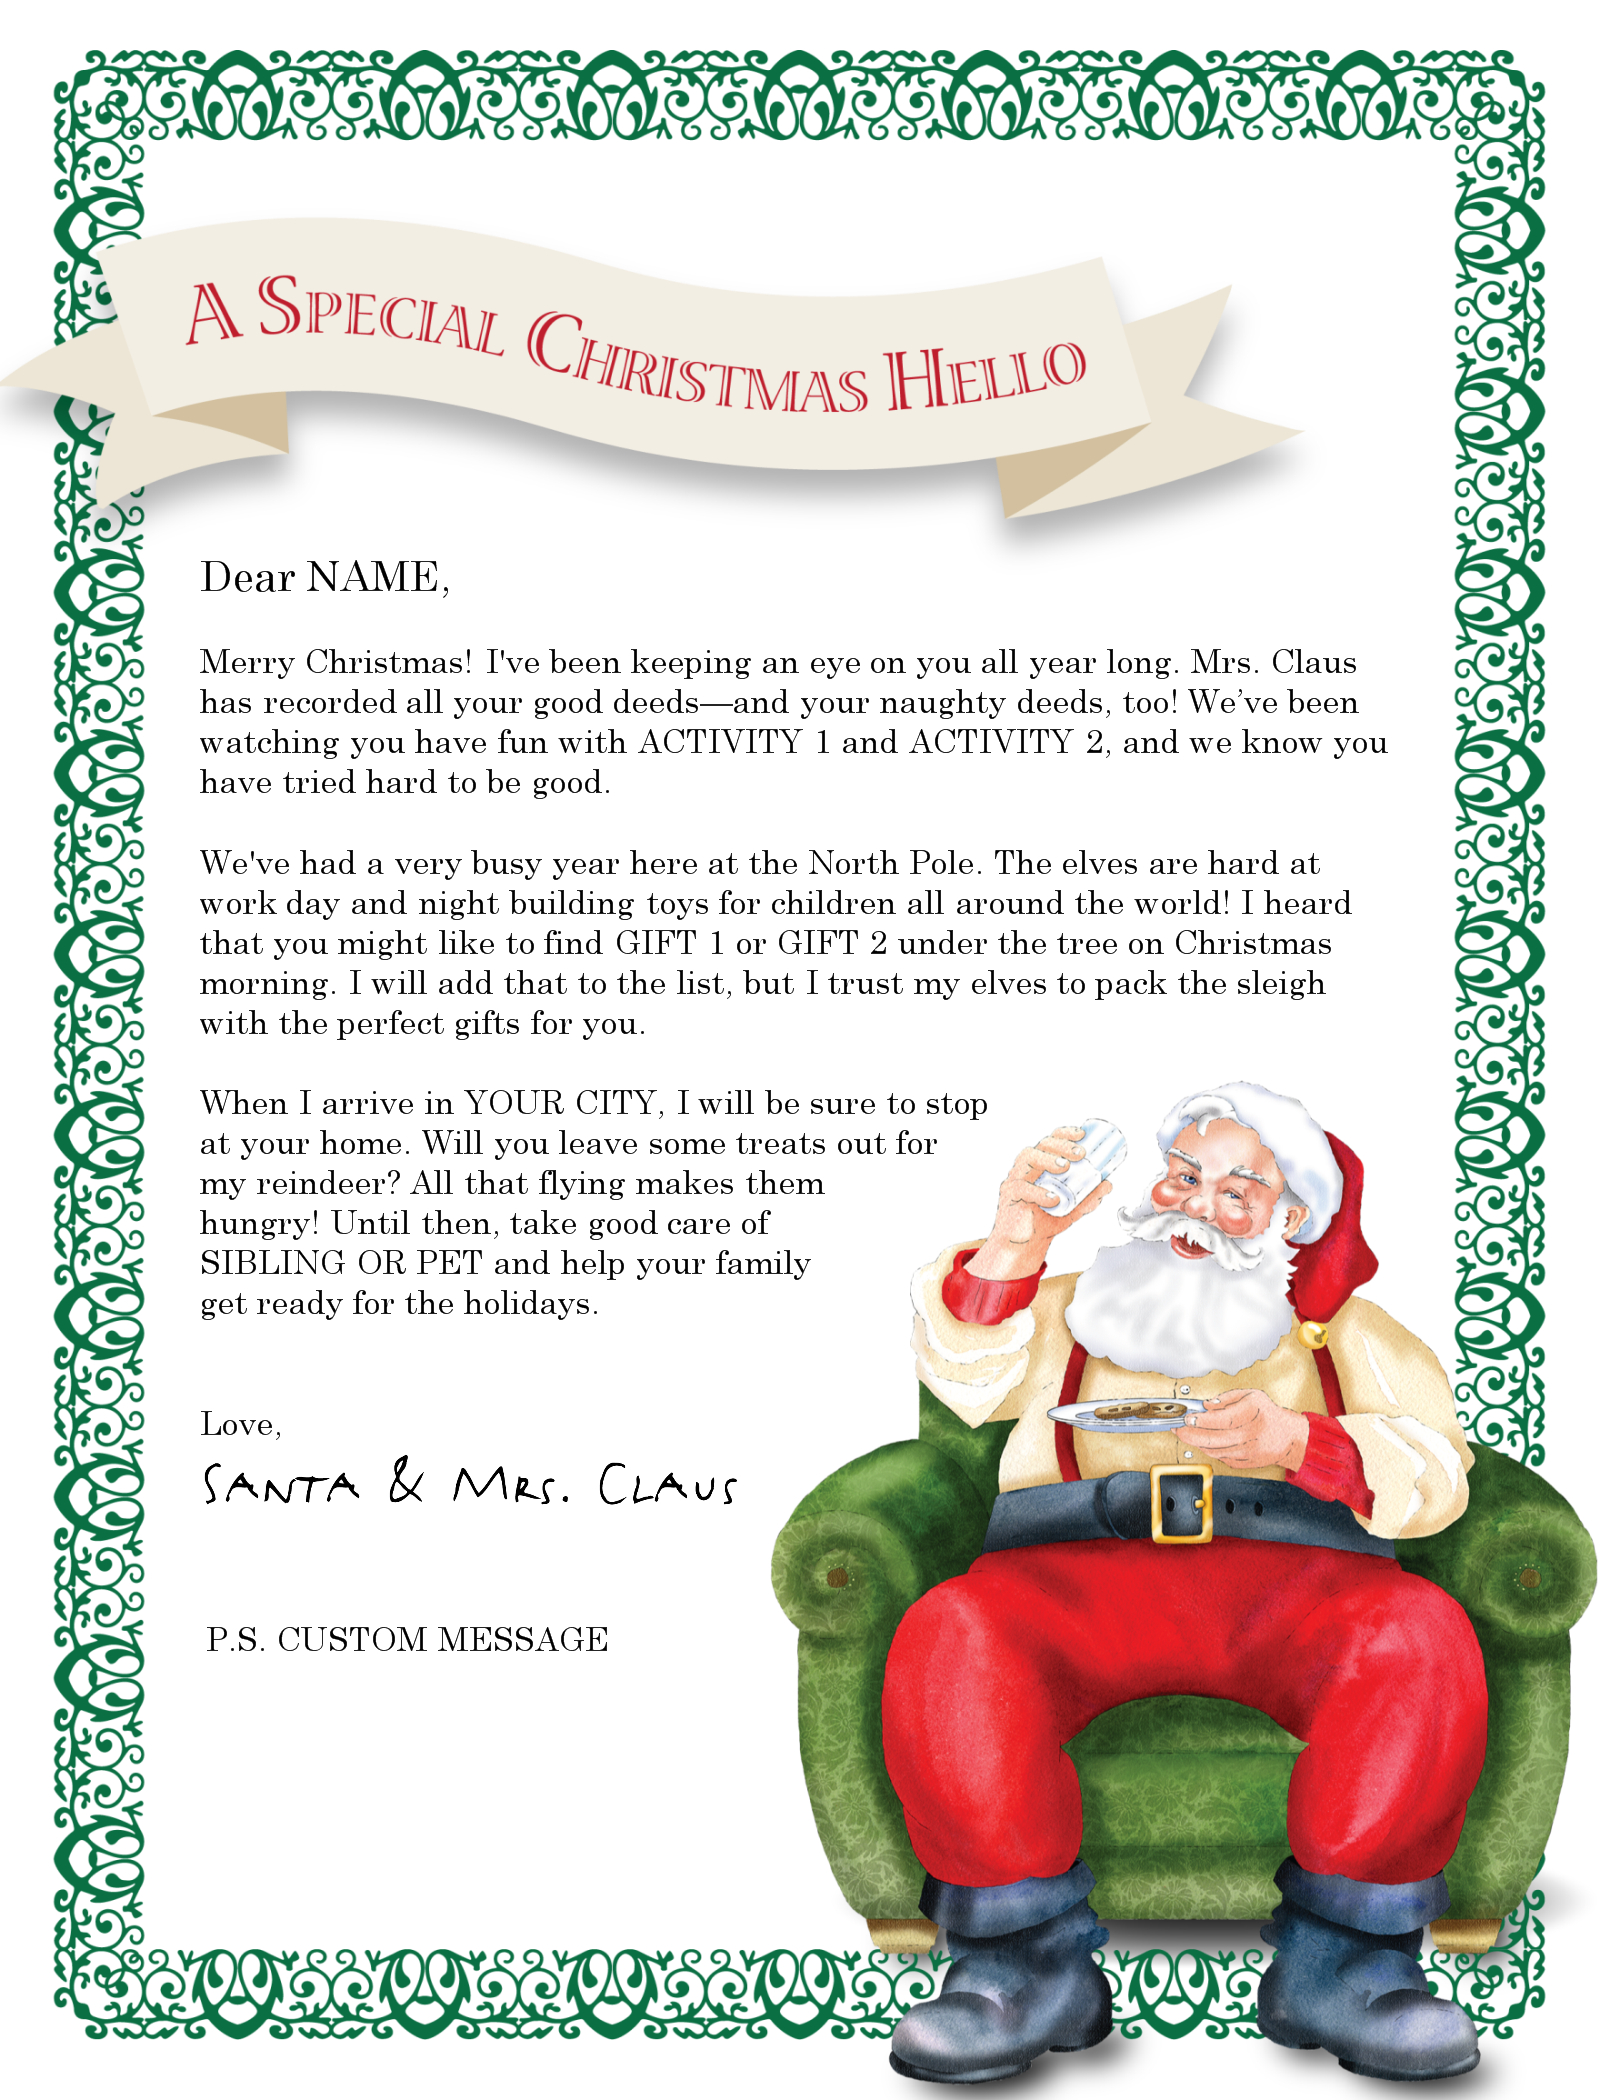 Letter From Santa Templates Free | Try It Free! Login Learn More - Free Printable Christmas Morning Letters From Santa